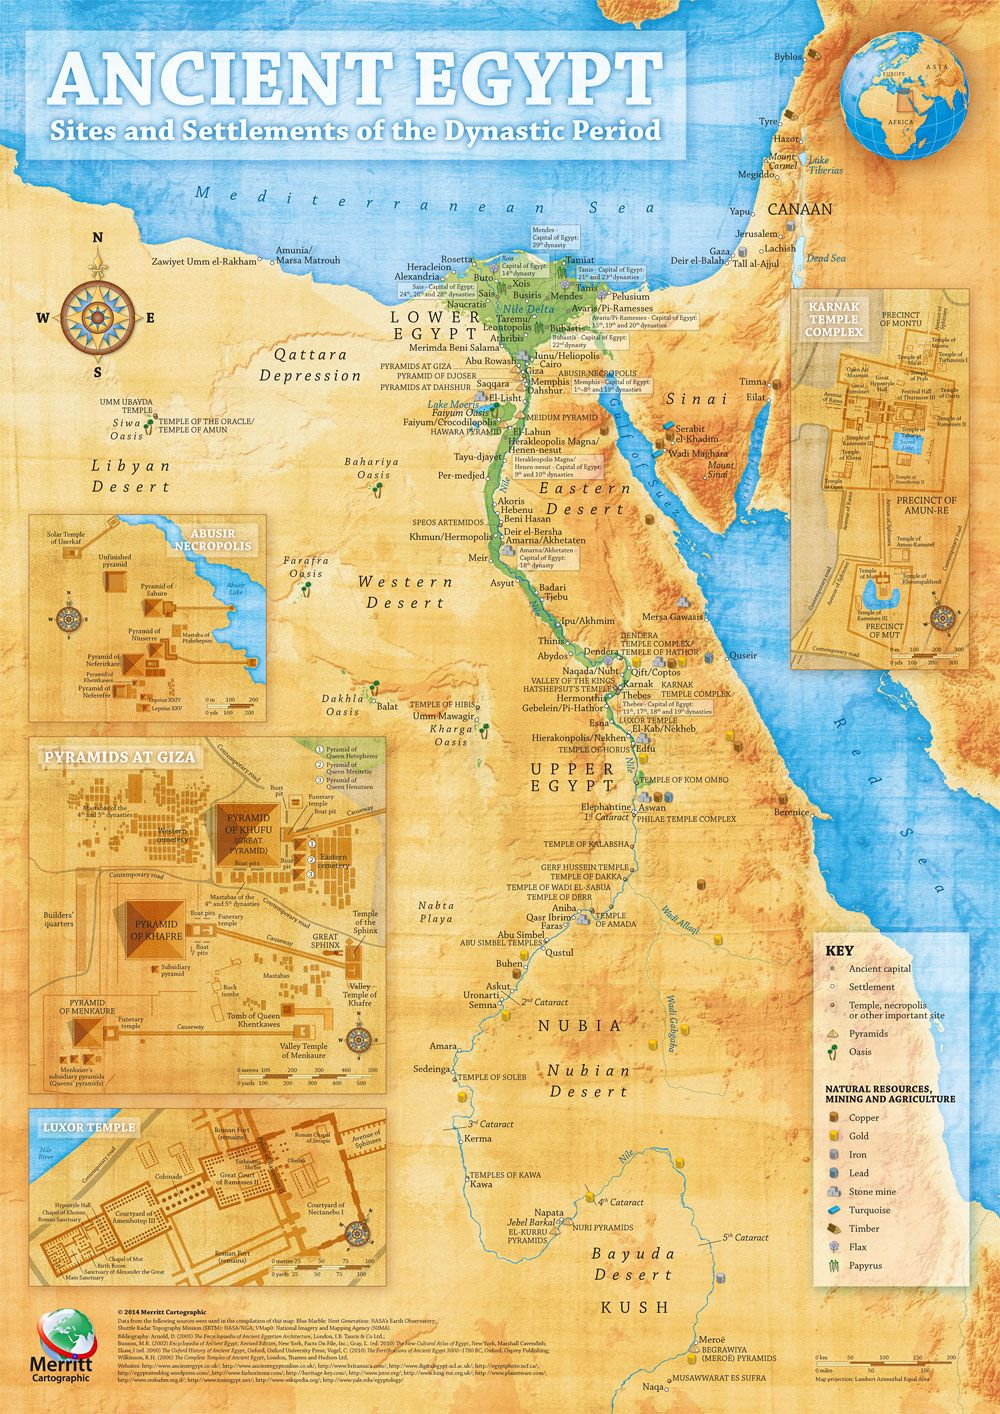 About egypt egypt known as the land of the pharaohs the home of ancient egypt map illustrative overview map highlighting the main sites and settlements of the ancient egyptian civilisation gumiabroncs